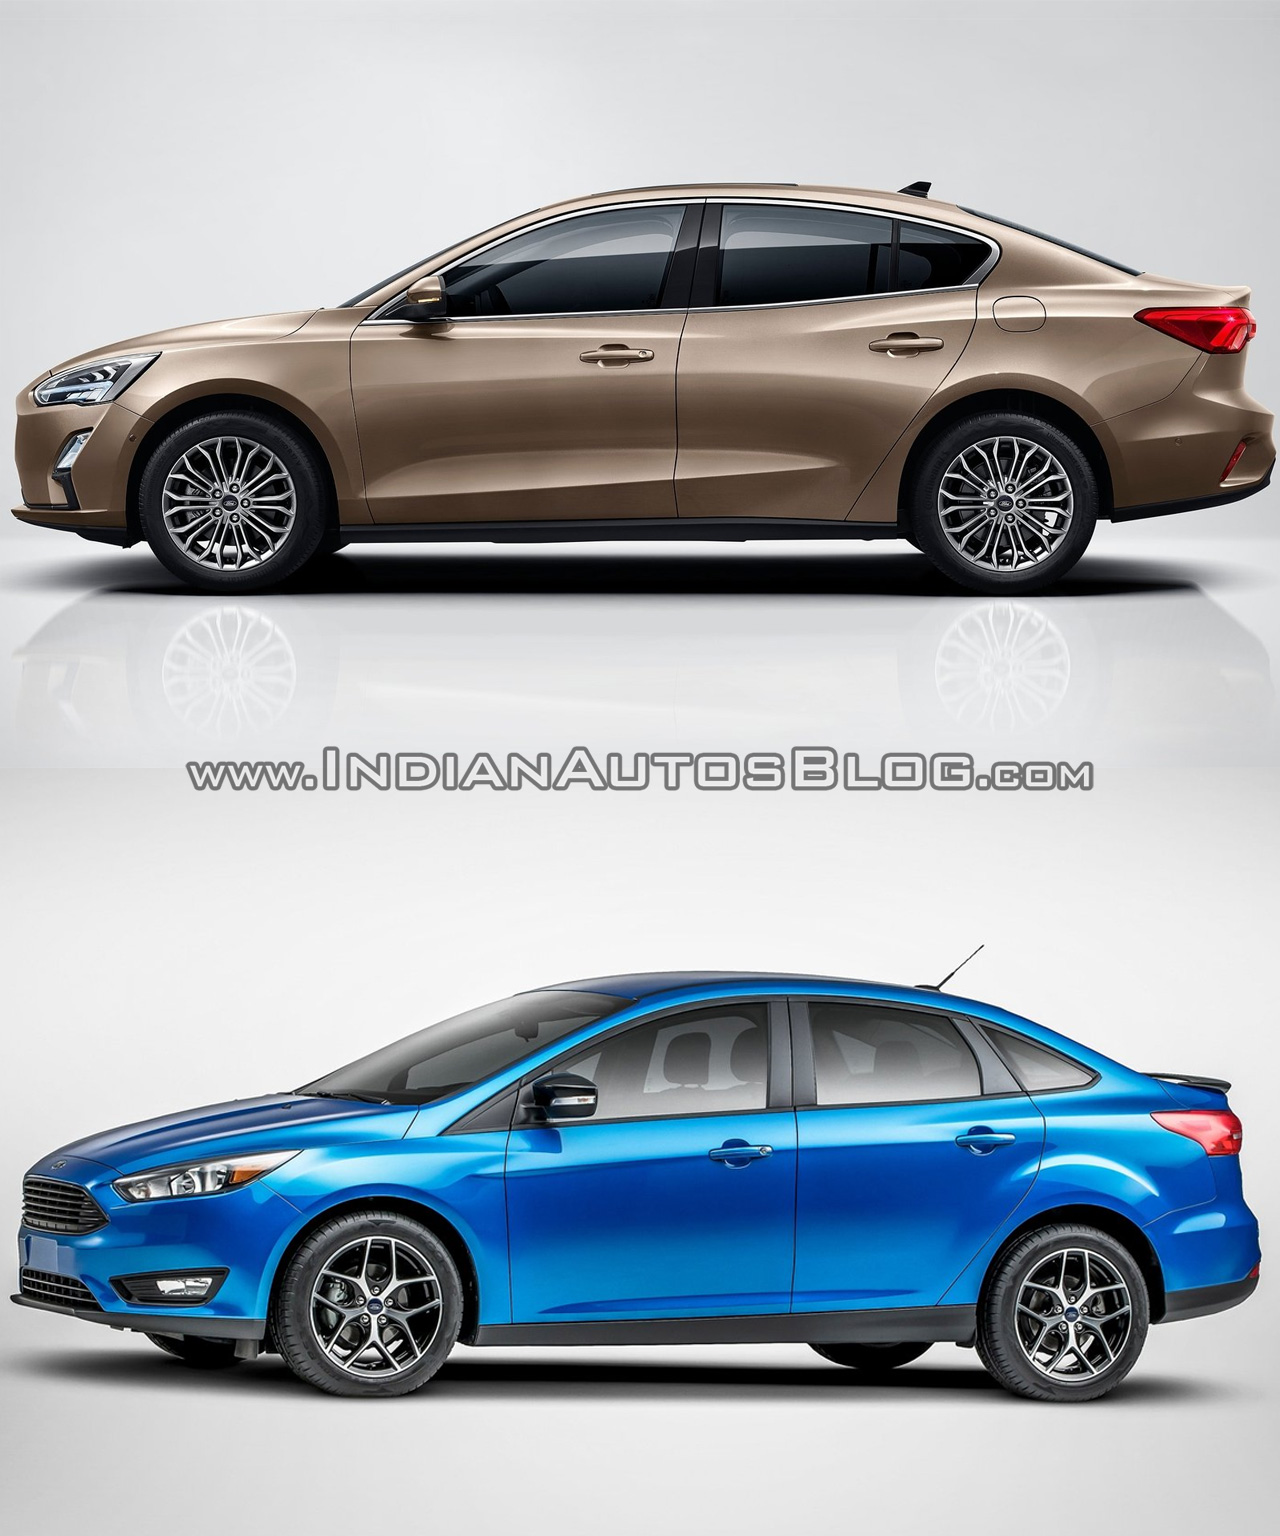 2018 Ford Focus Sedan vs 2014 Ford Focus Sedan profile